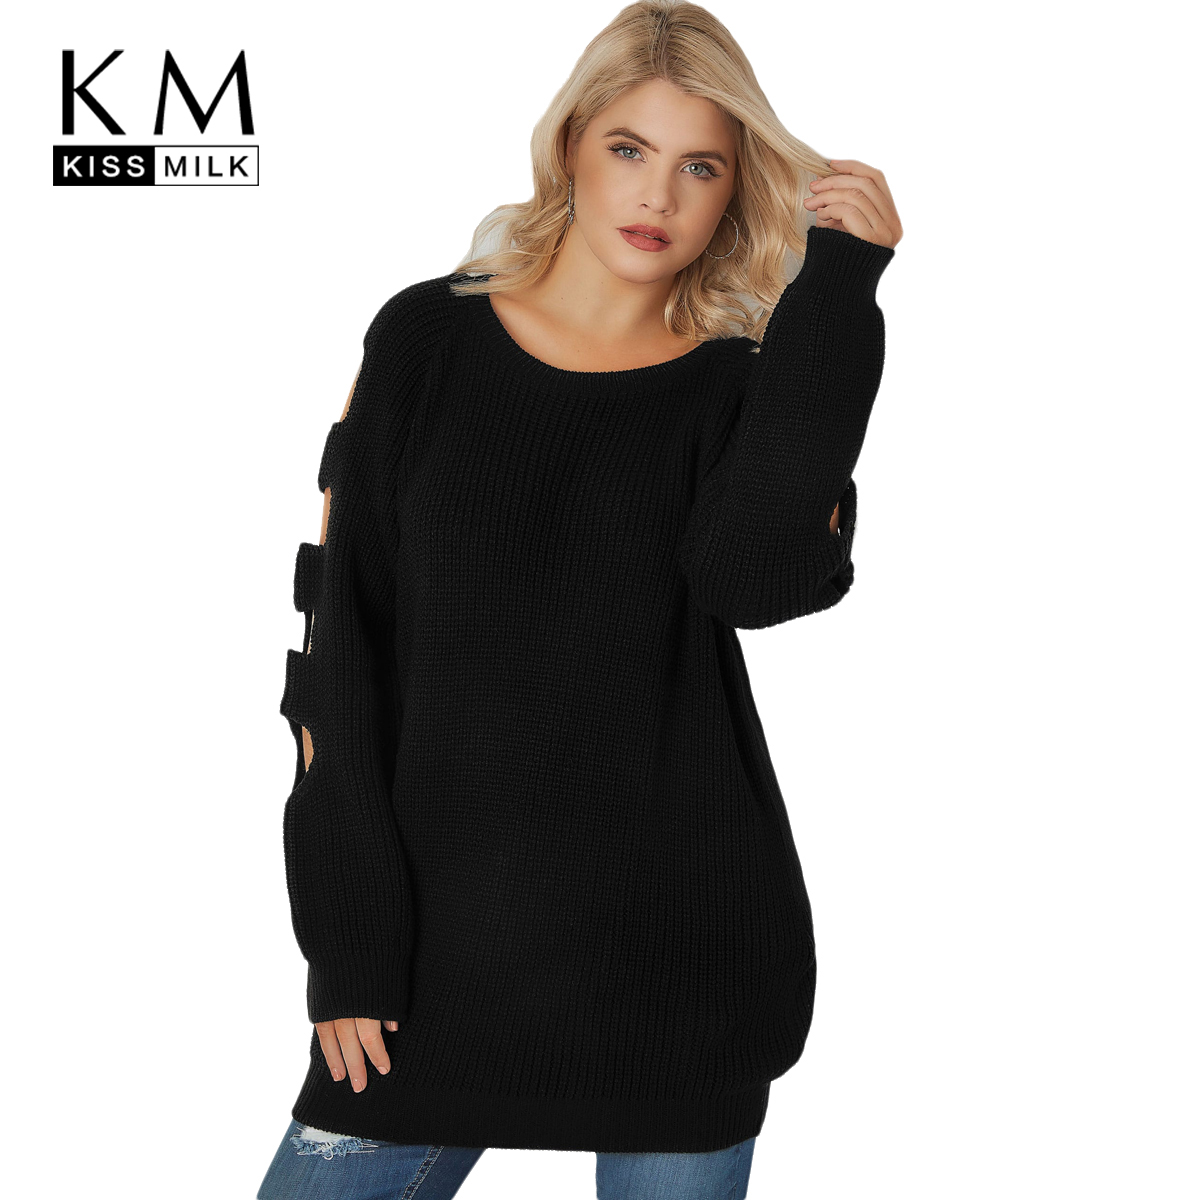 Kissmilk 2018 Plus Size Solid Women Sweater Hollow Out Long Sleeve Large Size Female Clothing Big Size Casual Lady Pullovers hollow out plus size poncho sweater